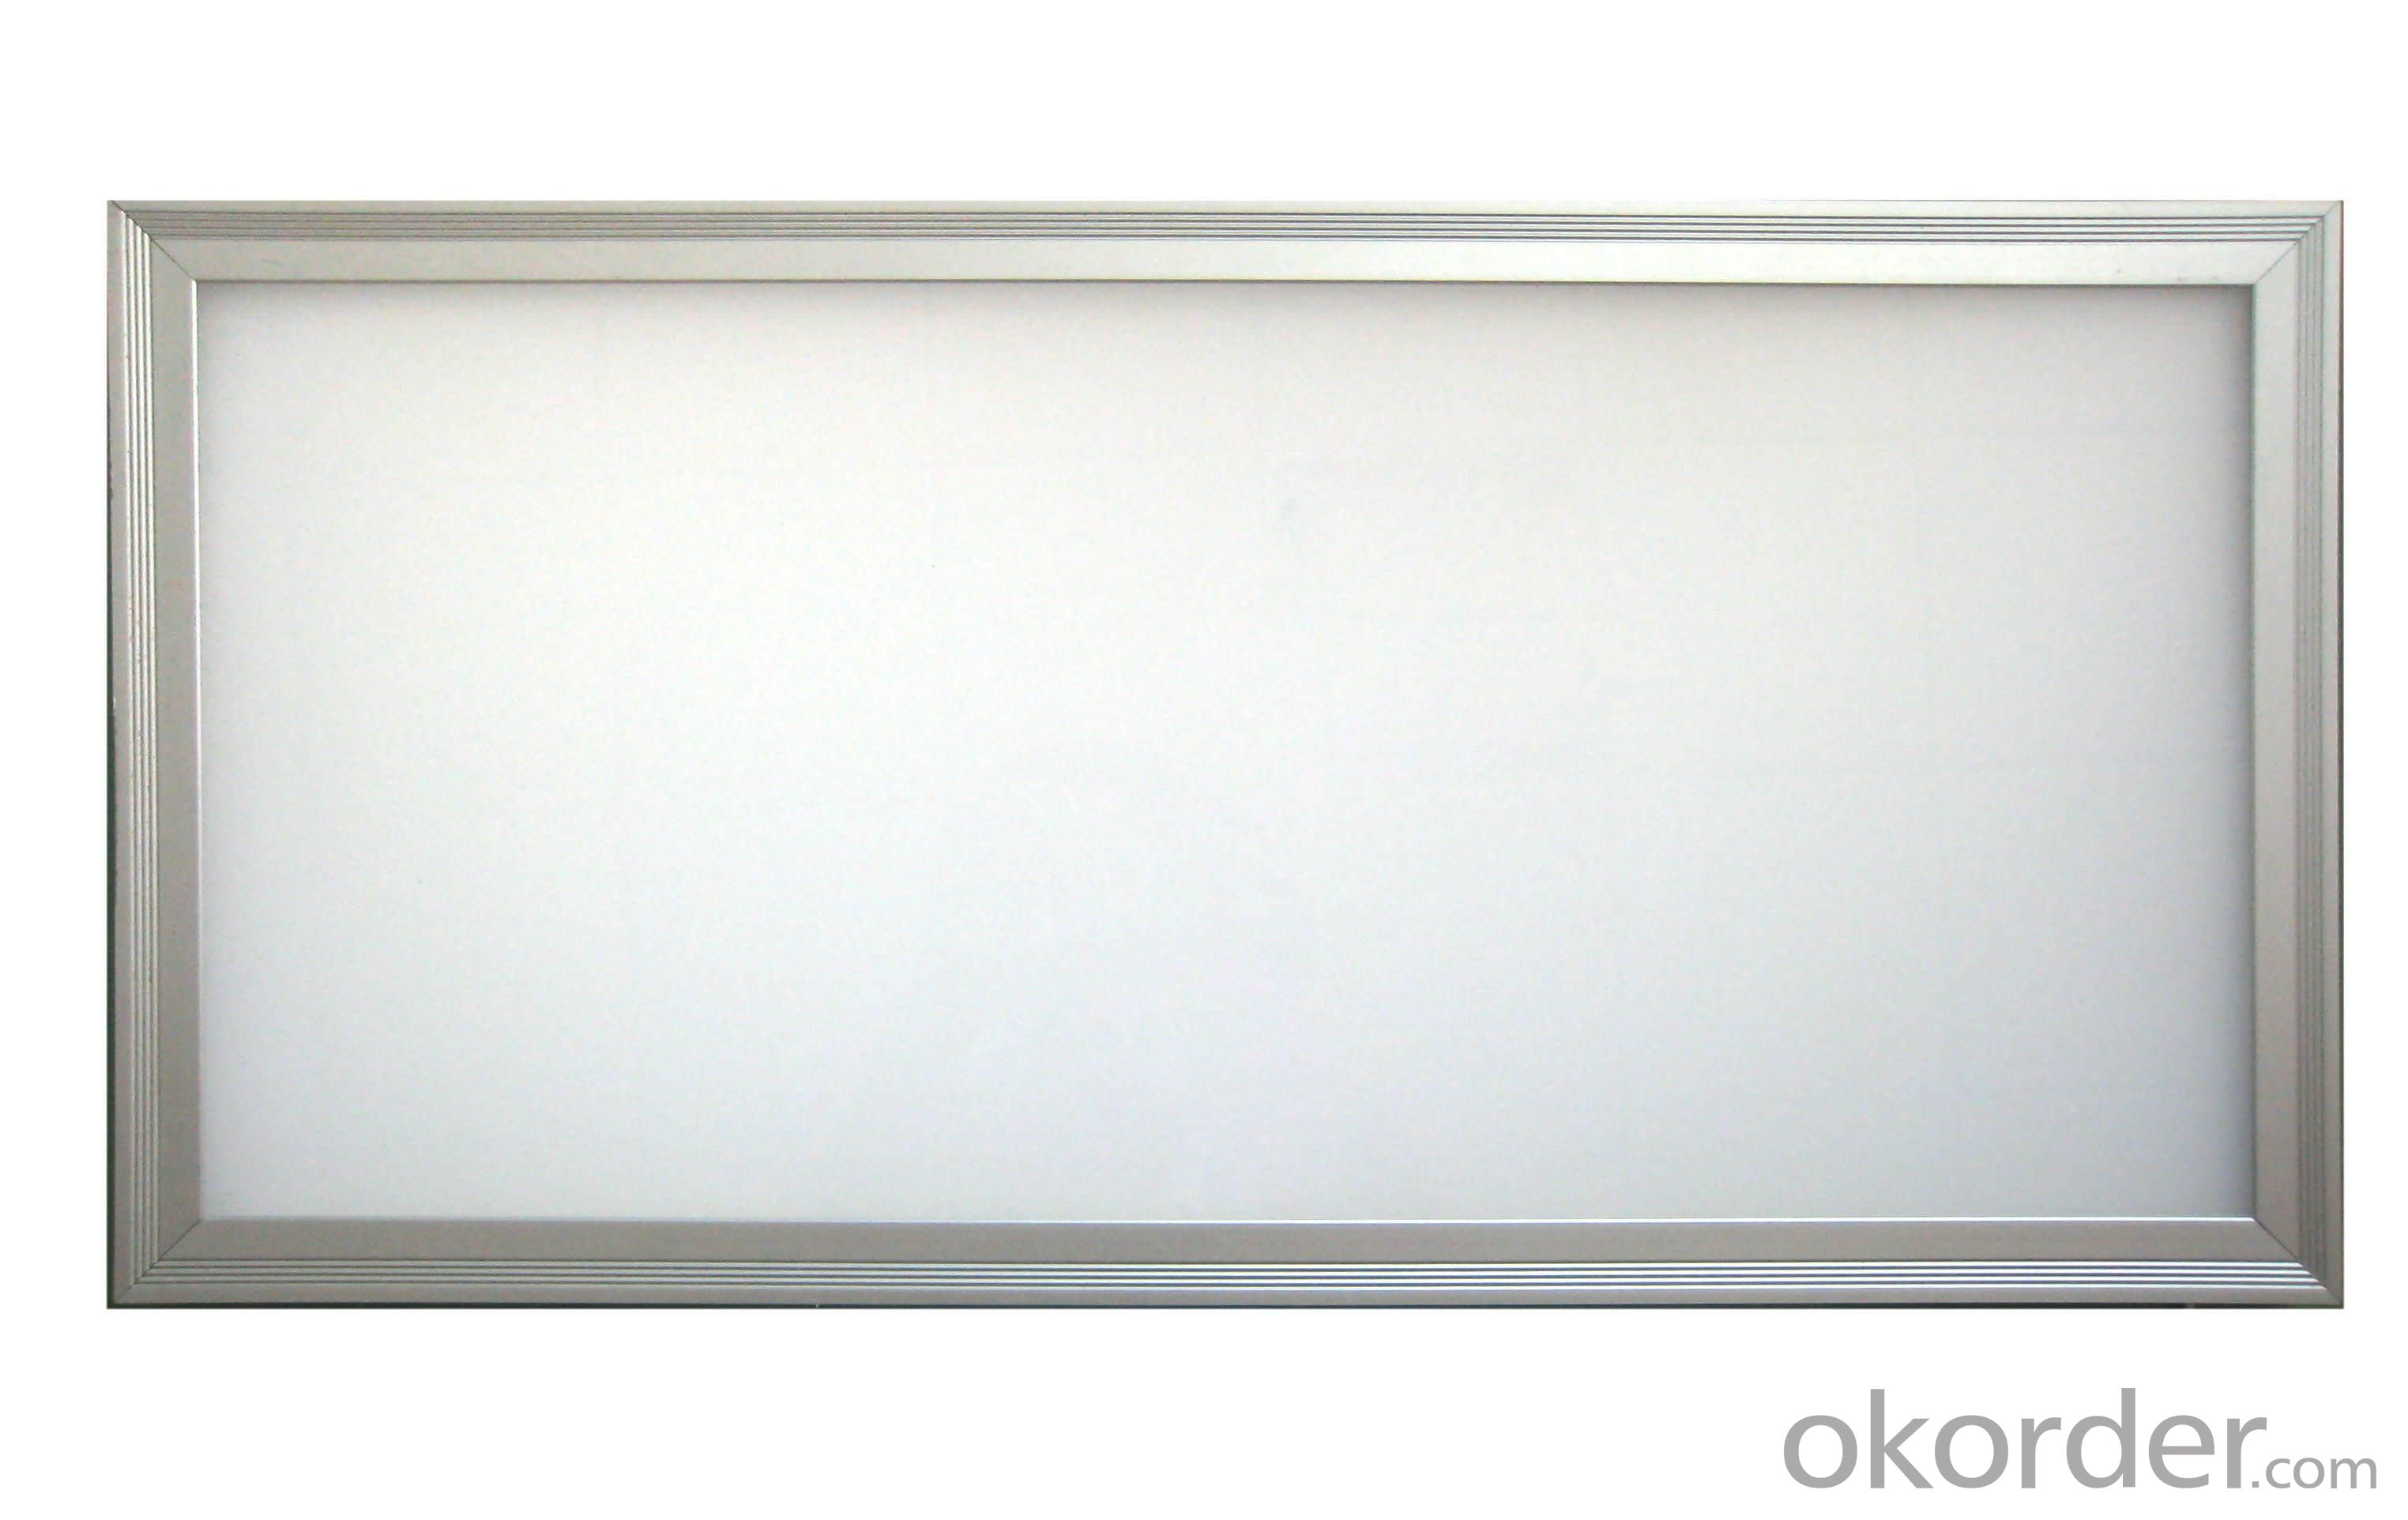 LED Panel Light 300x600MM Grille Light, for Ceiling Lighting